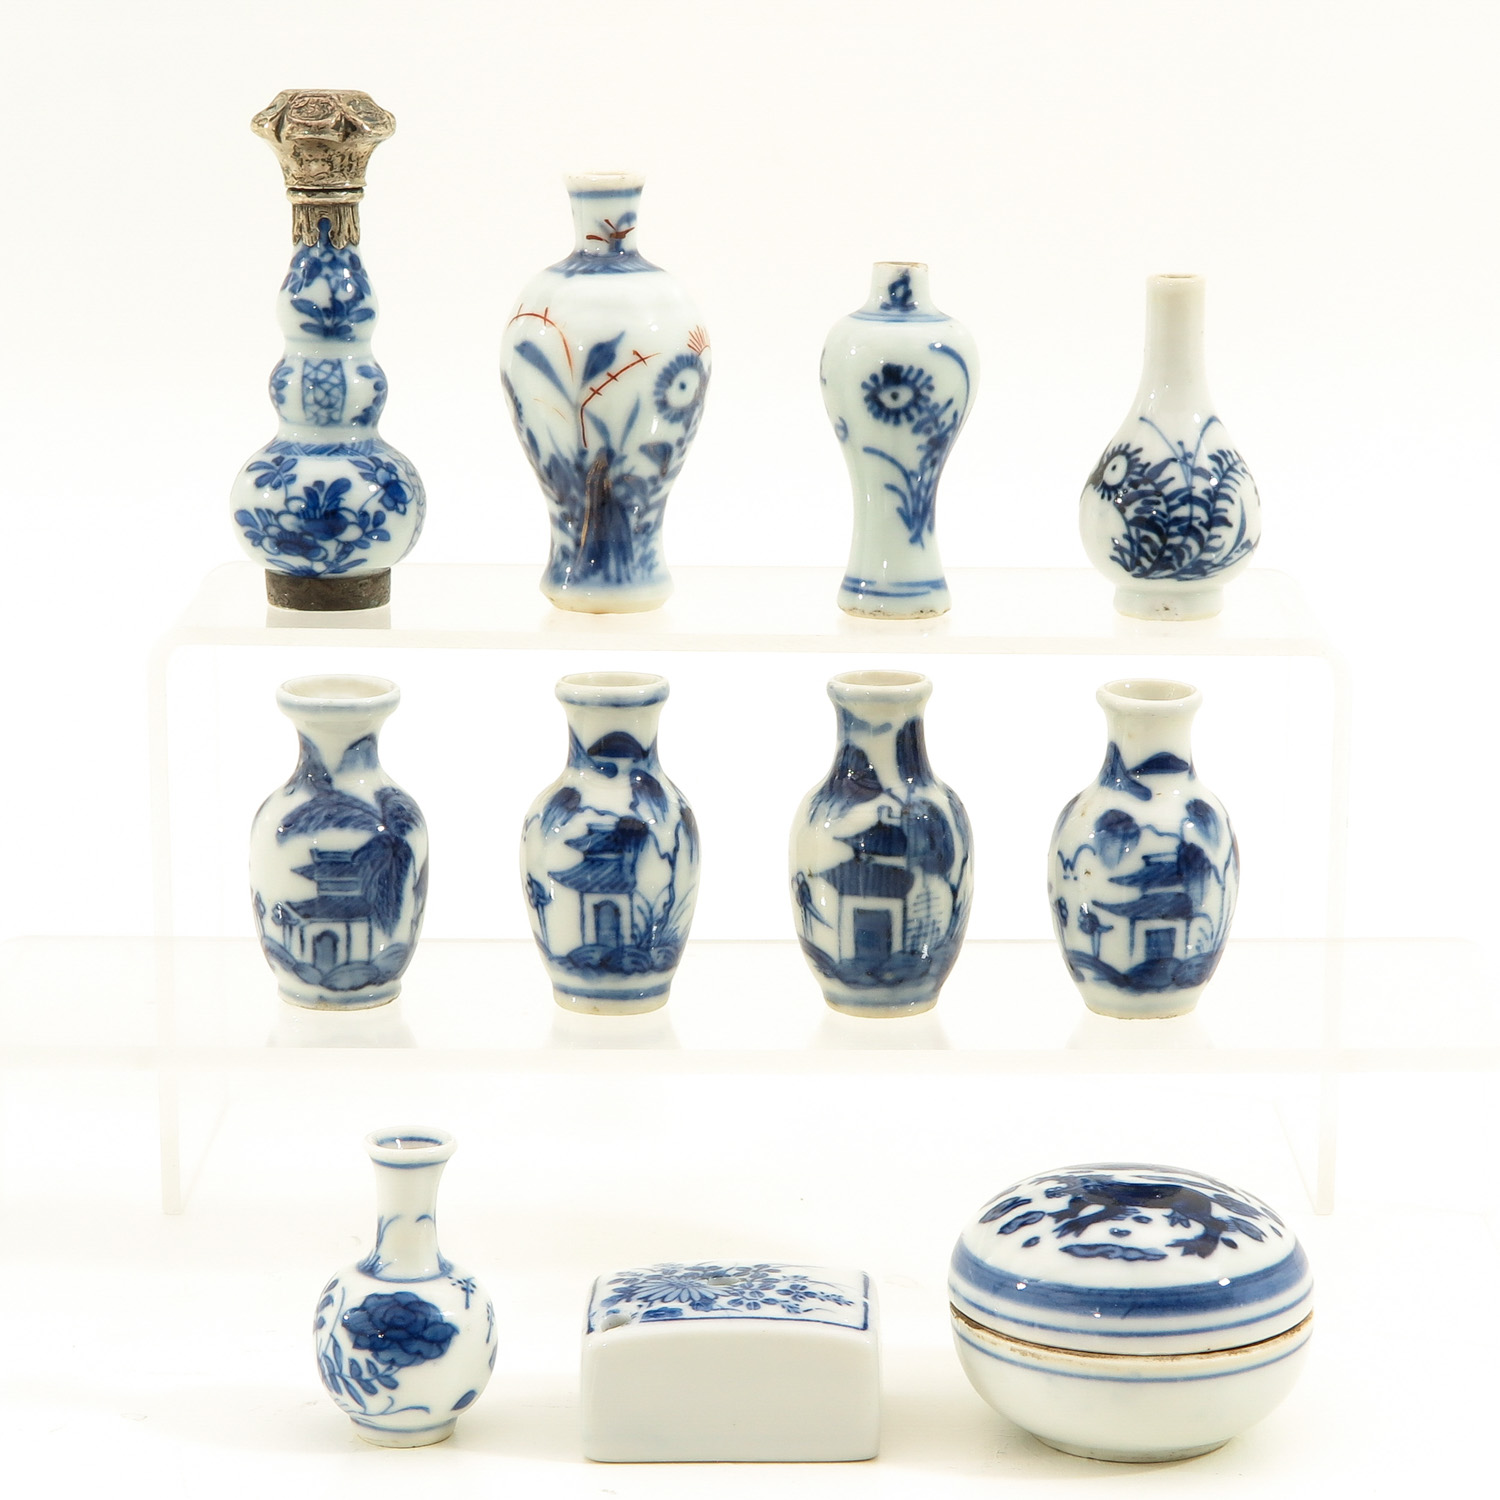 Lot 7058 - A Collection of Chinese Miniatures